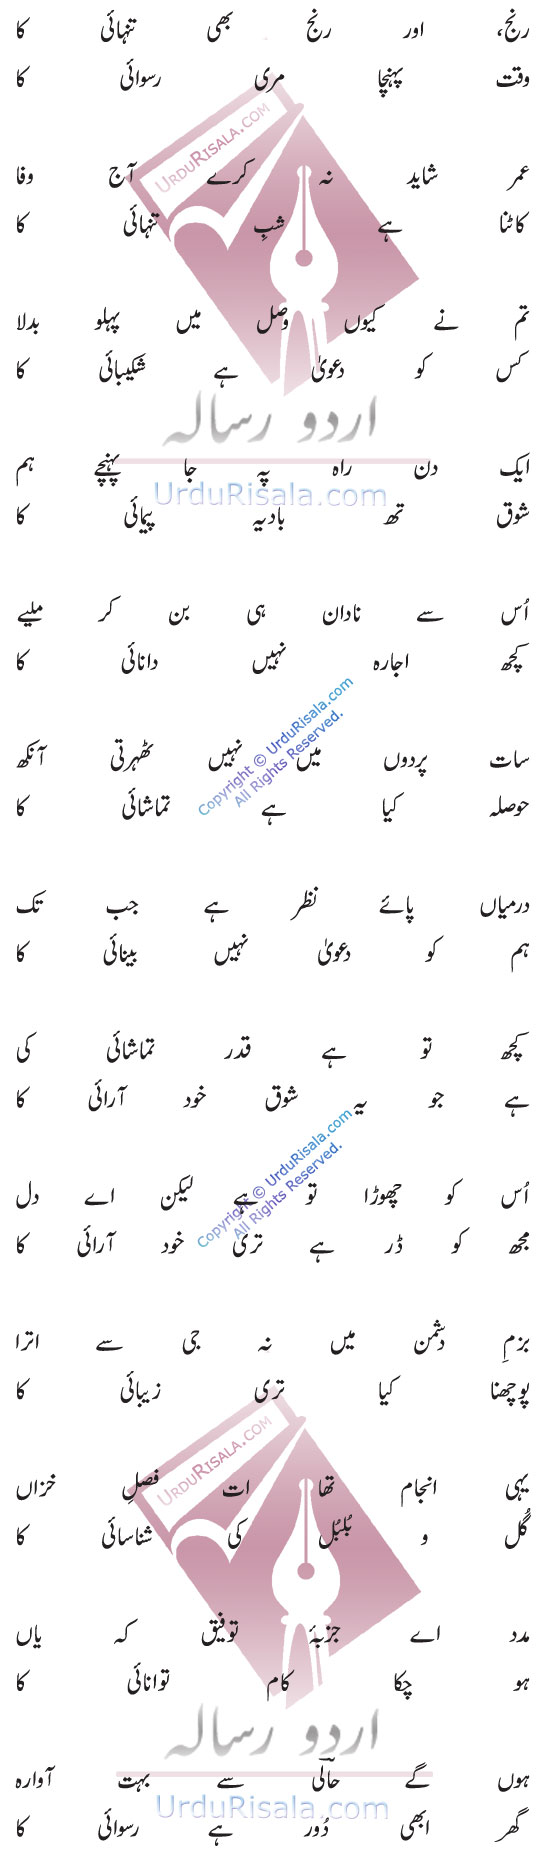 essay on altaf hussain hali Being a poet, critic, teacher, reformer and an impressive prose-writer, maulana  altaf hussain hali, occupies a unique position among the giants.